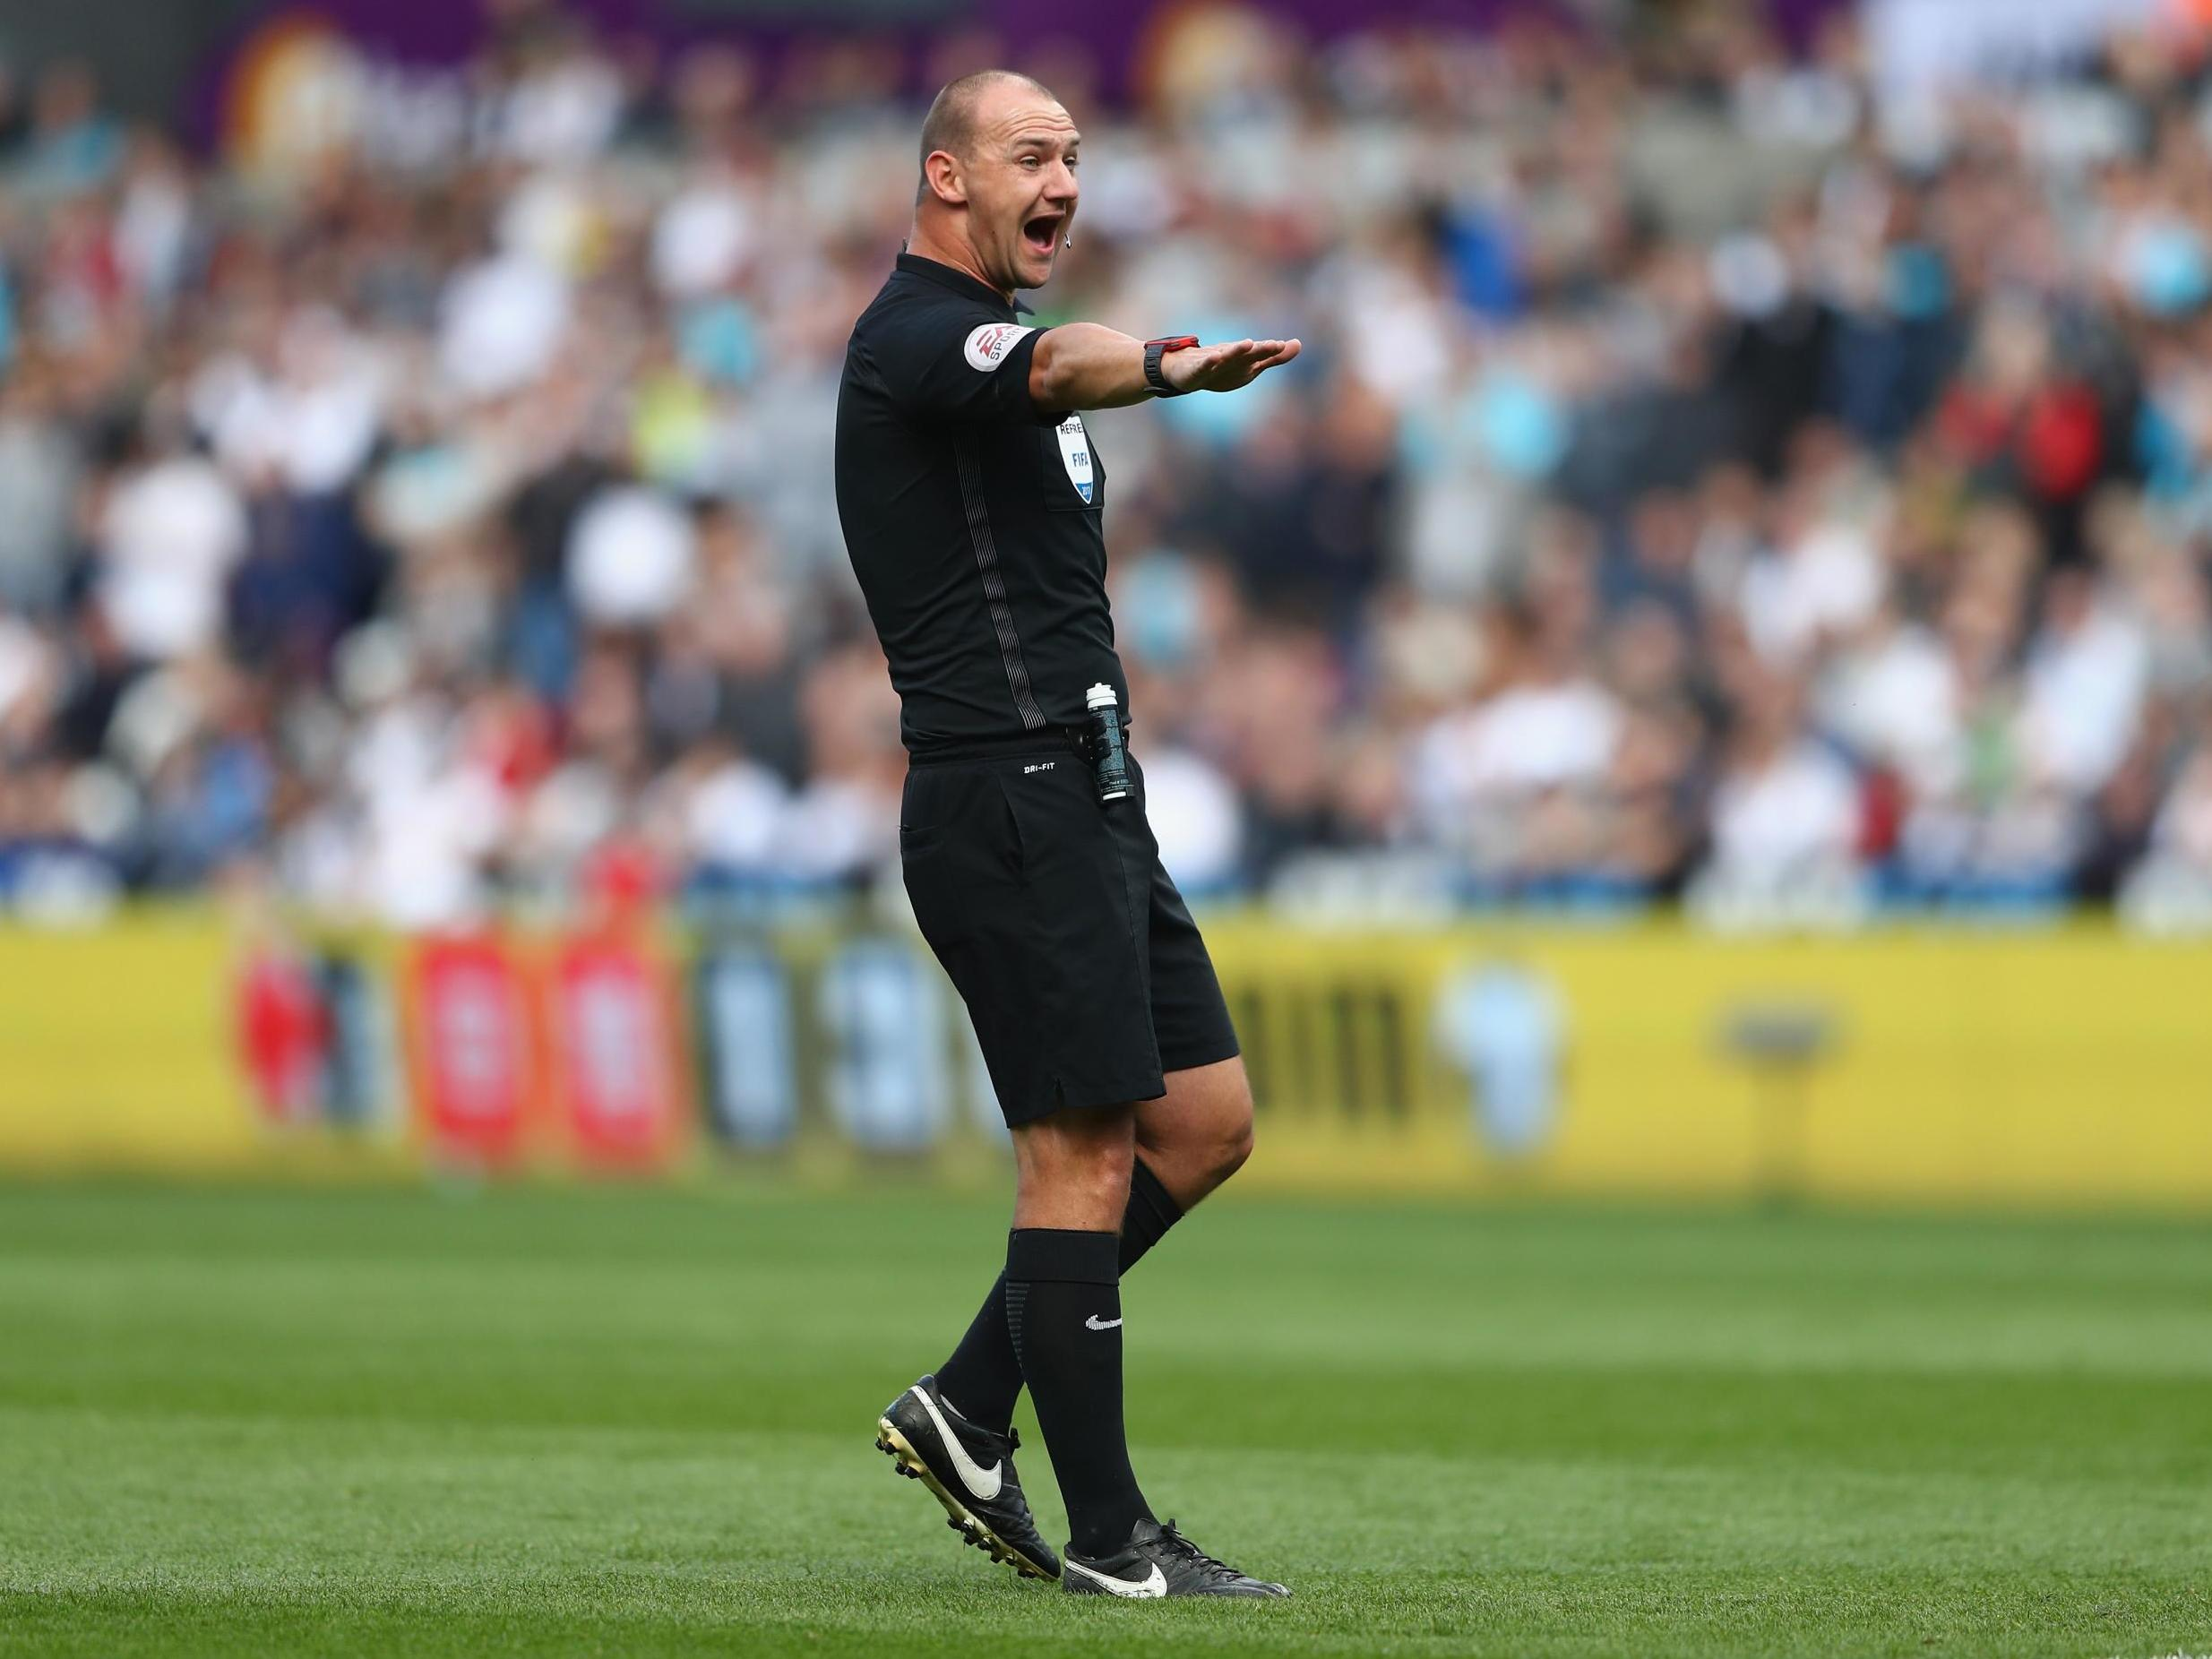 Bobby Madley: Referee opens up on private Snapchat message which led to Premier League sacking